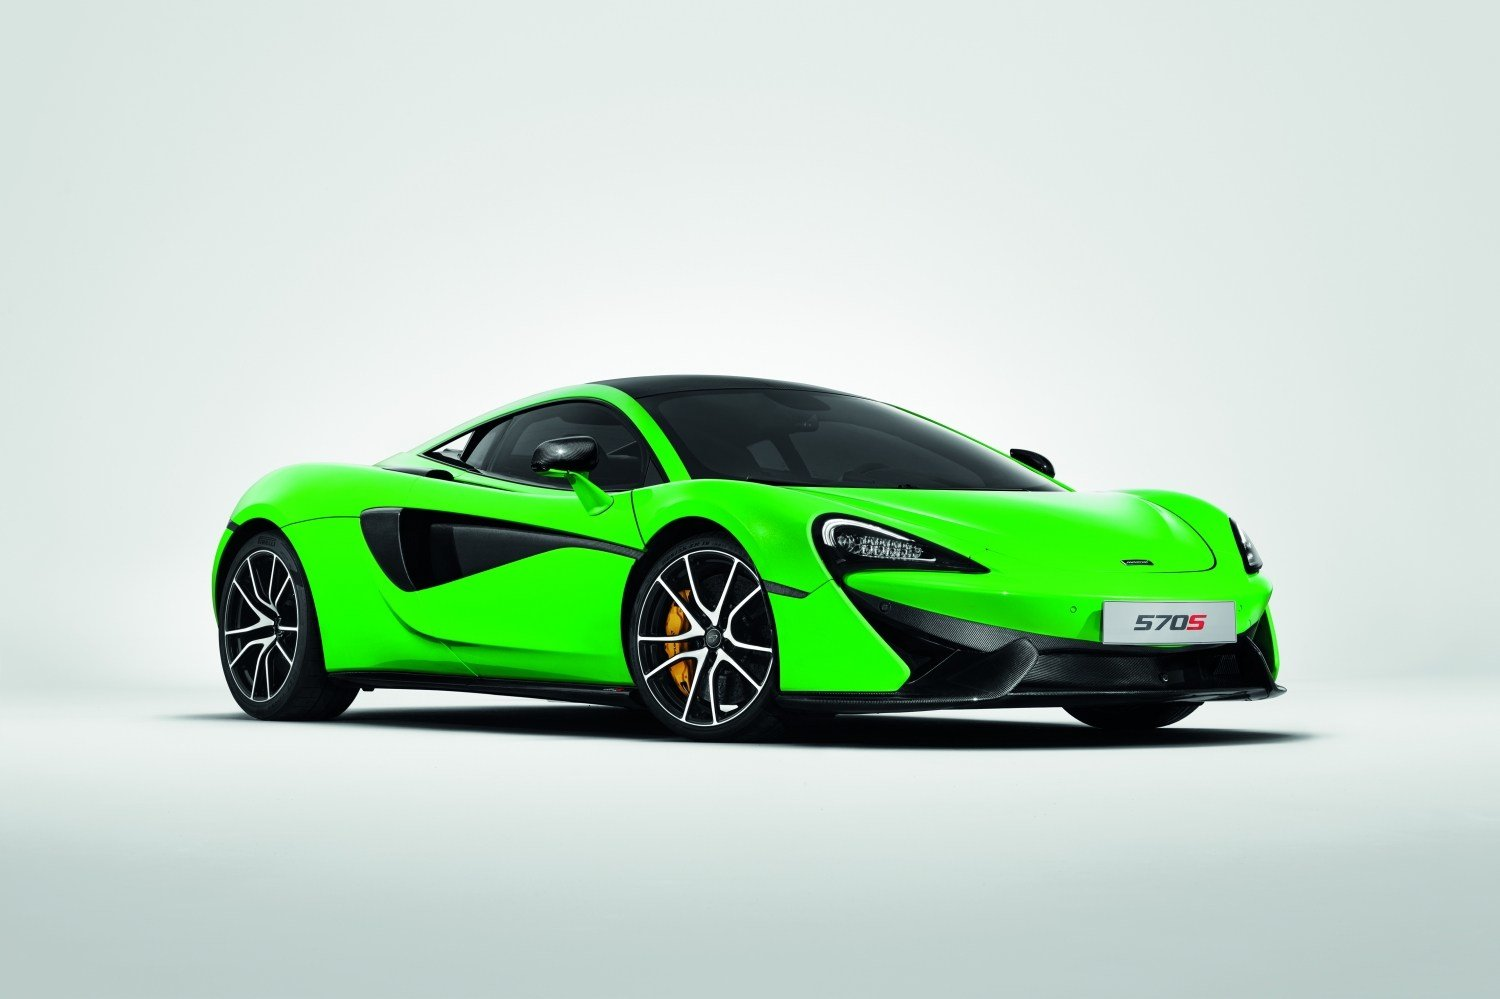 Latest Mclaren Sports Series Cars Look Hot With New Accessories Free Download